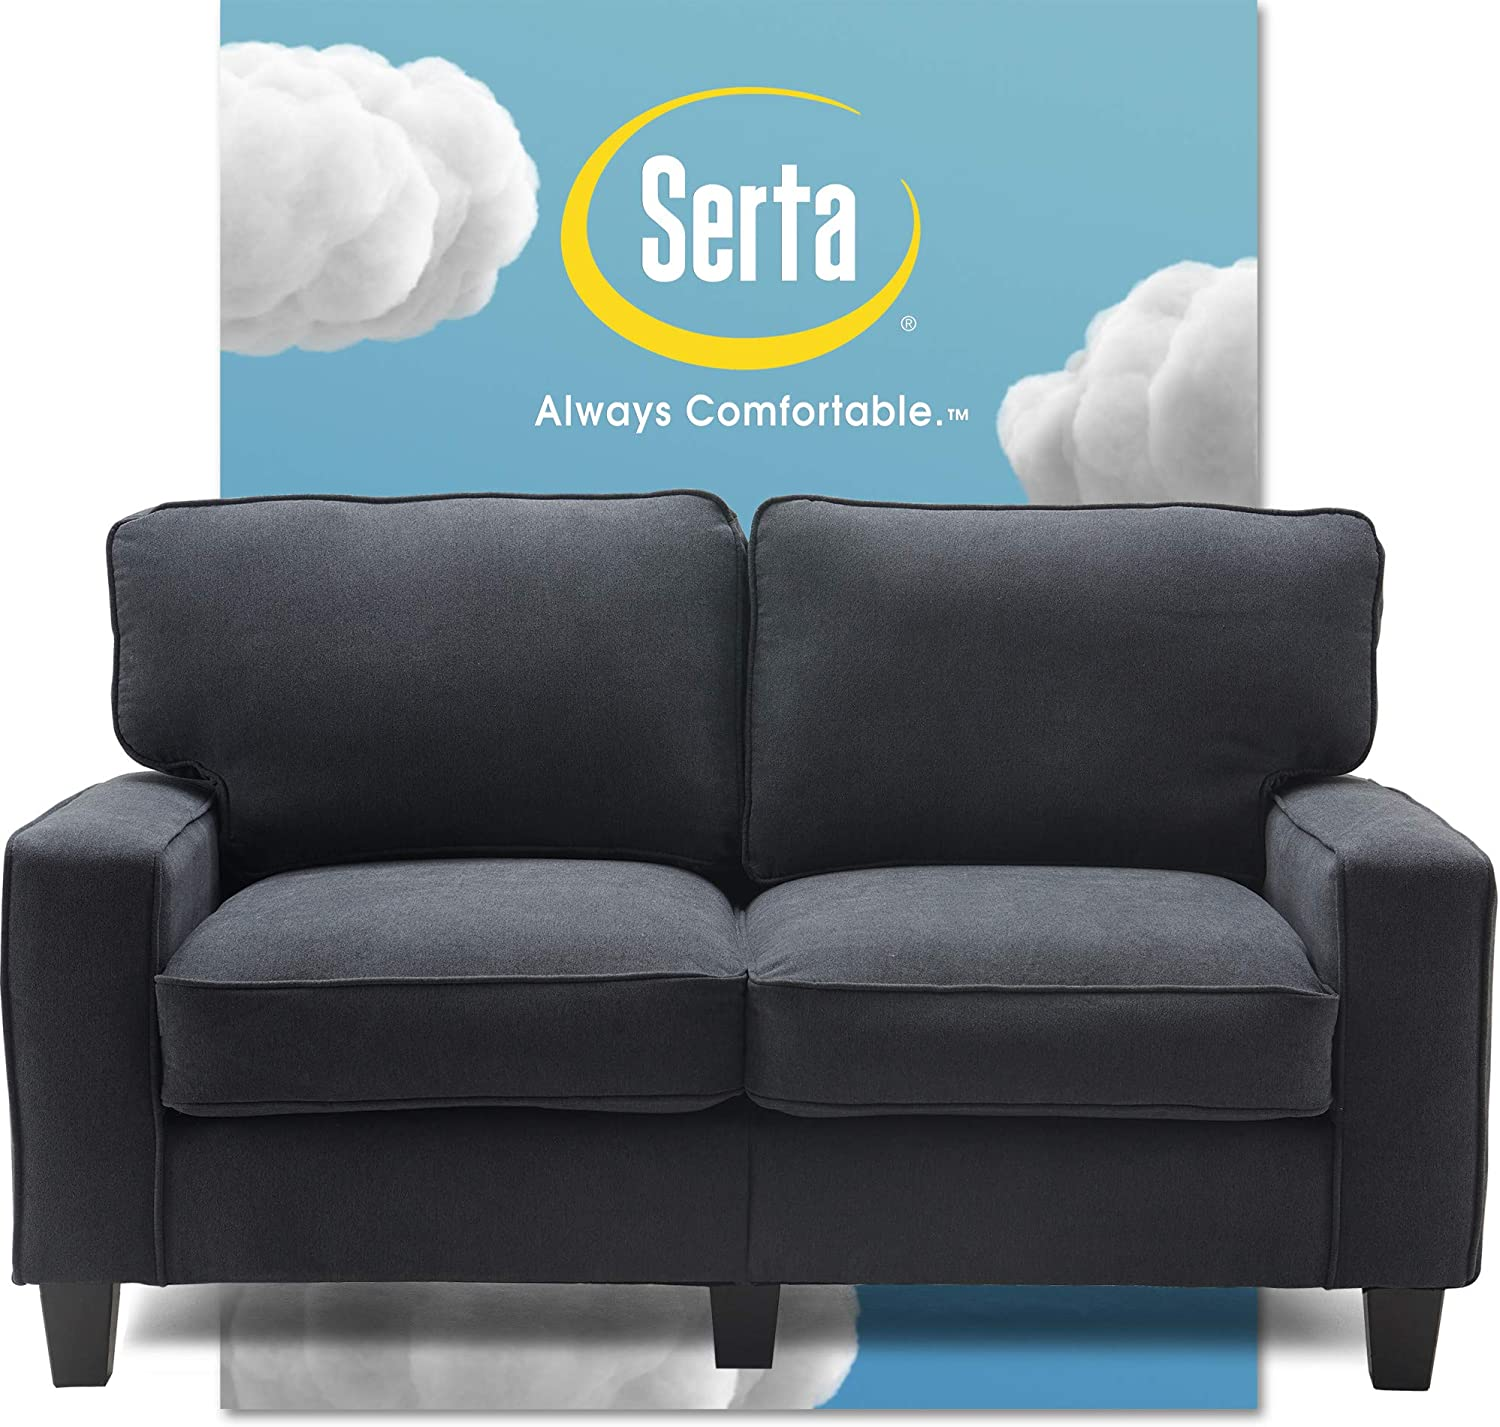 "Serta Palisades Upholstered Sofas for Living Room Modern Design Couch, Straight Arms, Soft Fabric Upholstery, Tool-Free Assembly, 61"" Loveseat, Charcoal"